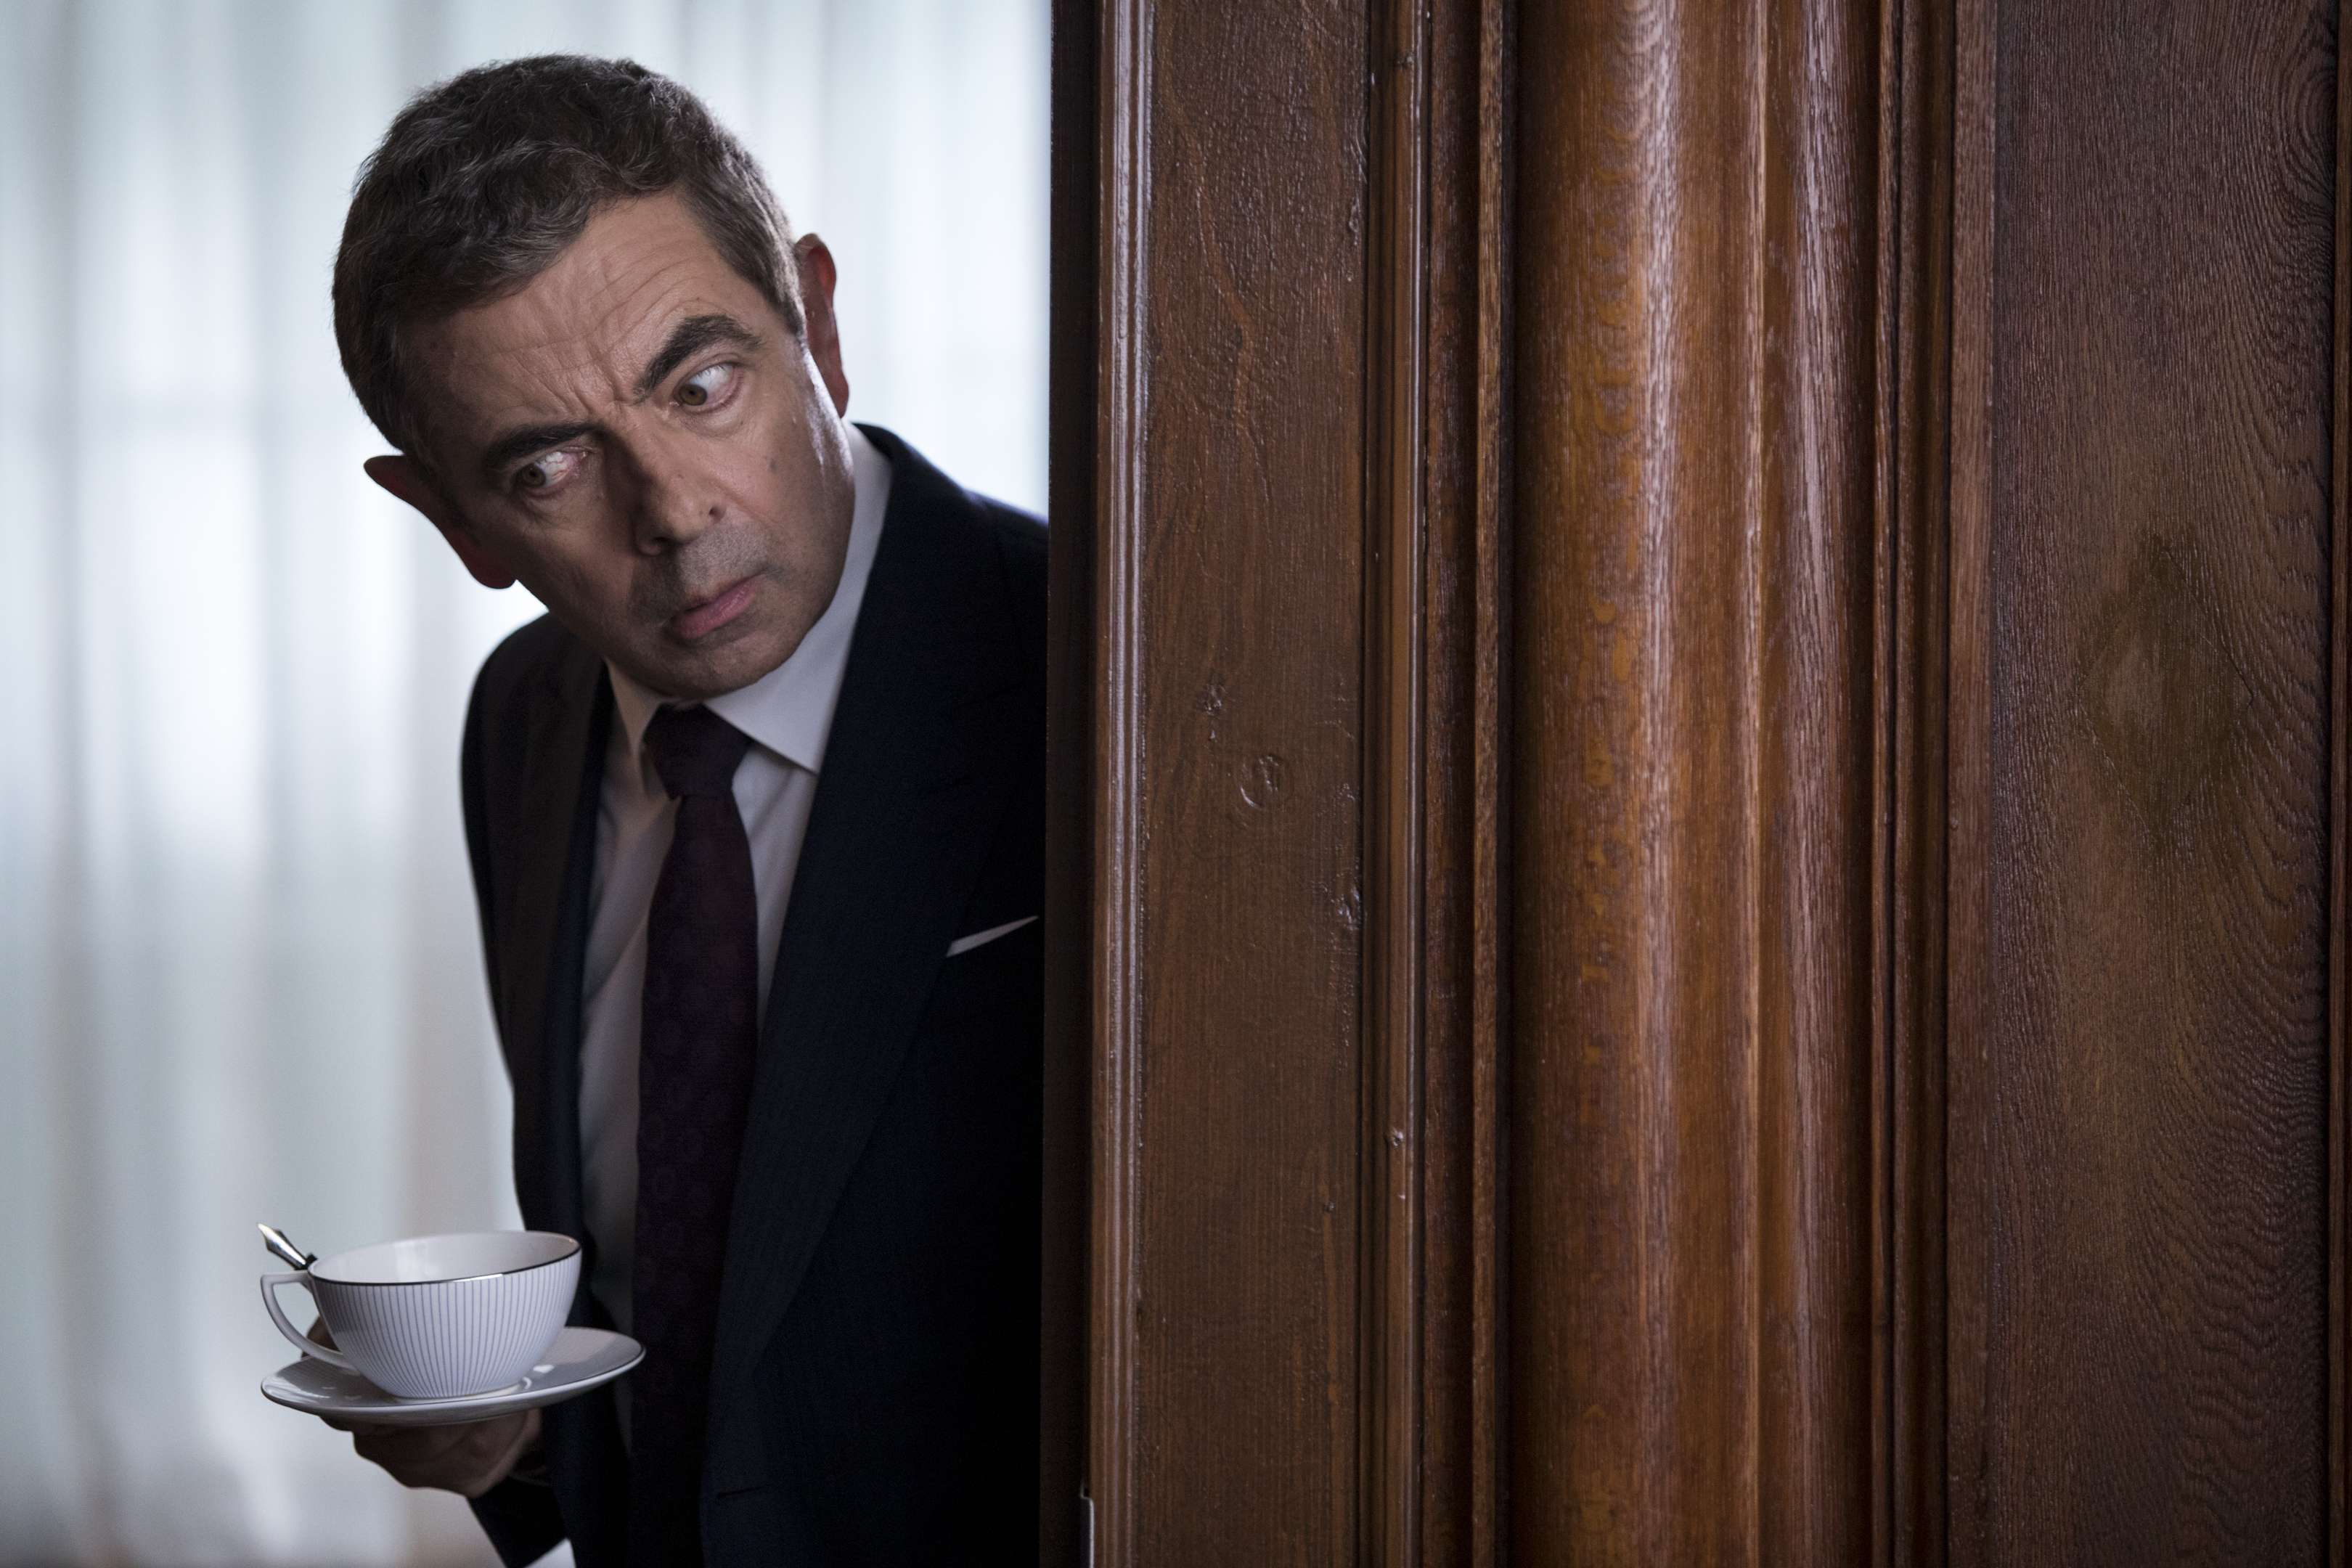 Rowan Atkinson is back as Johnny English in new film trailer